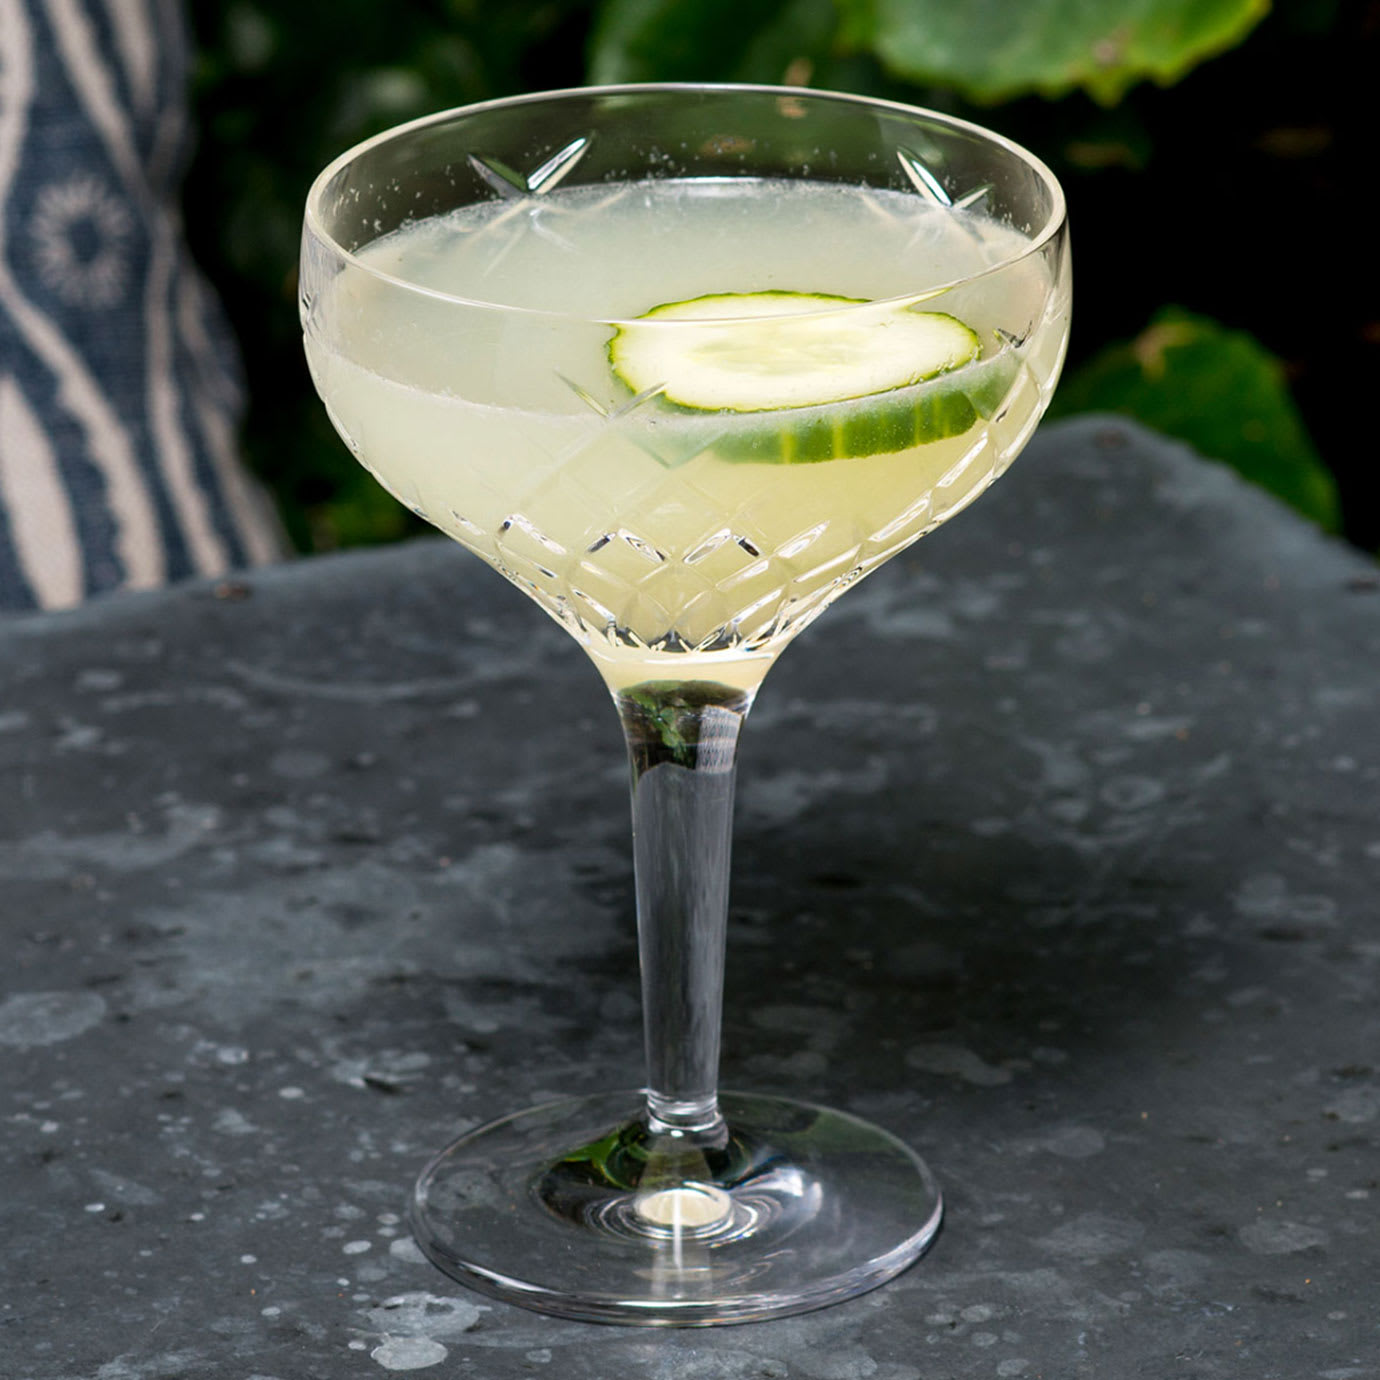 A cocktail with a slice of cucumber in it.